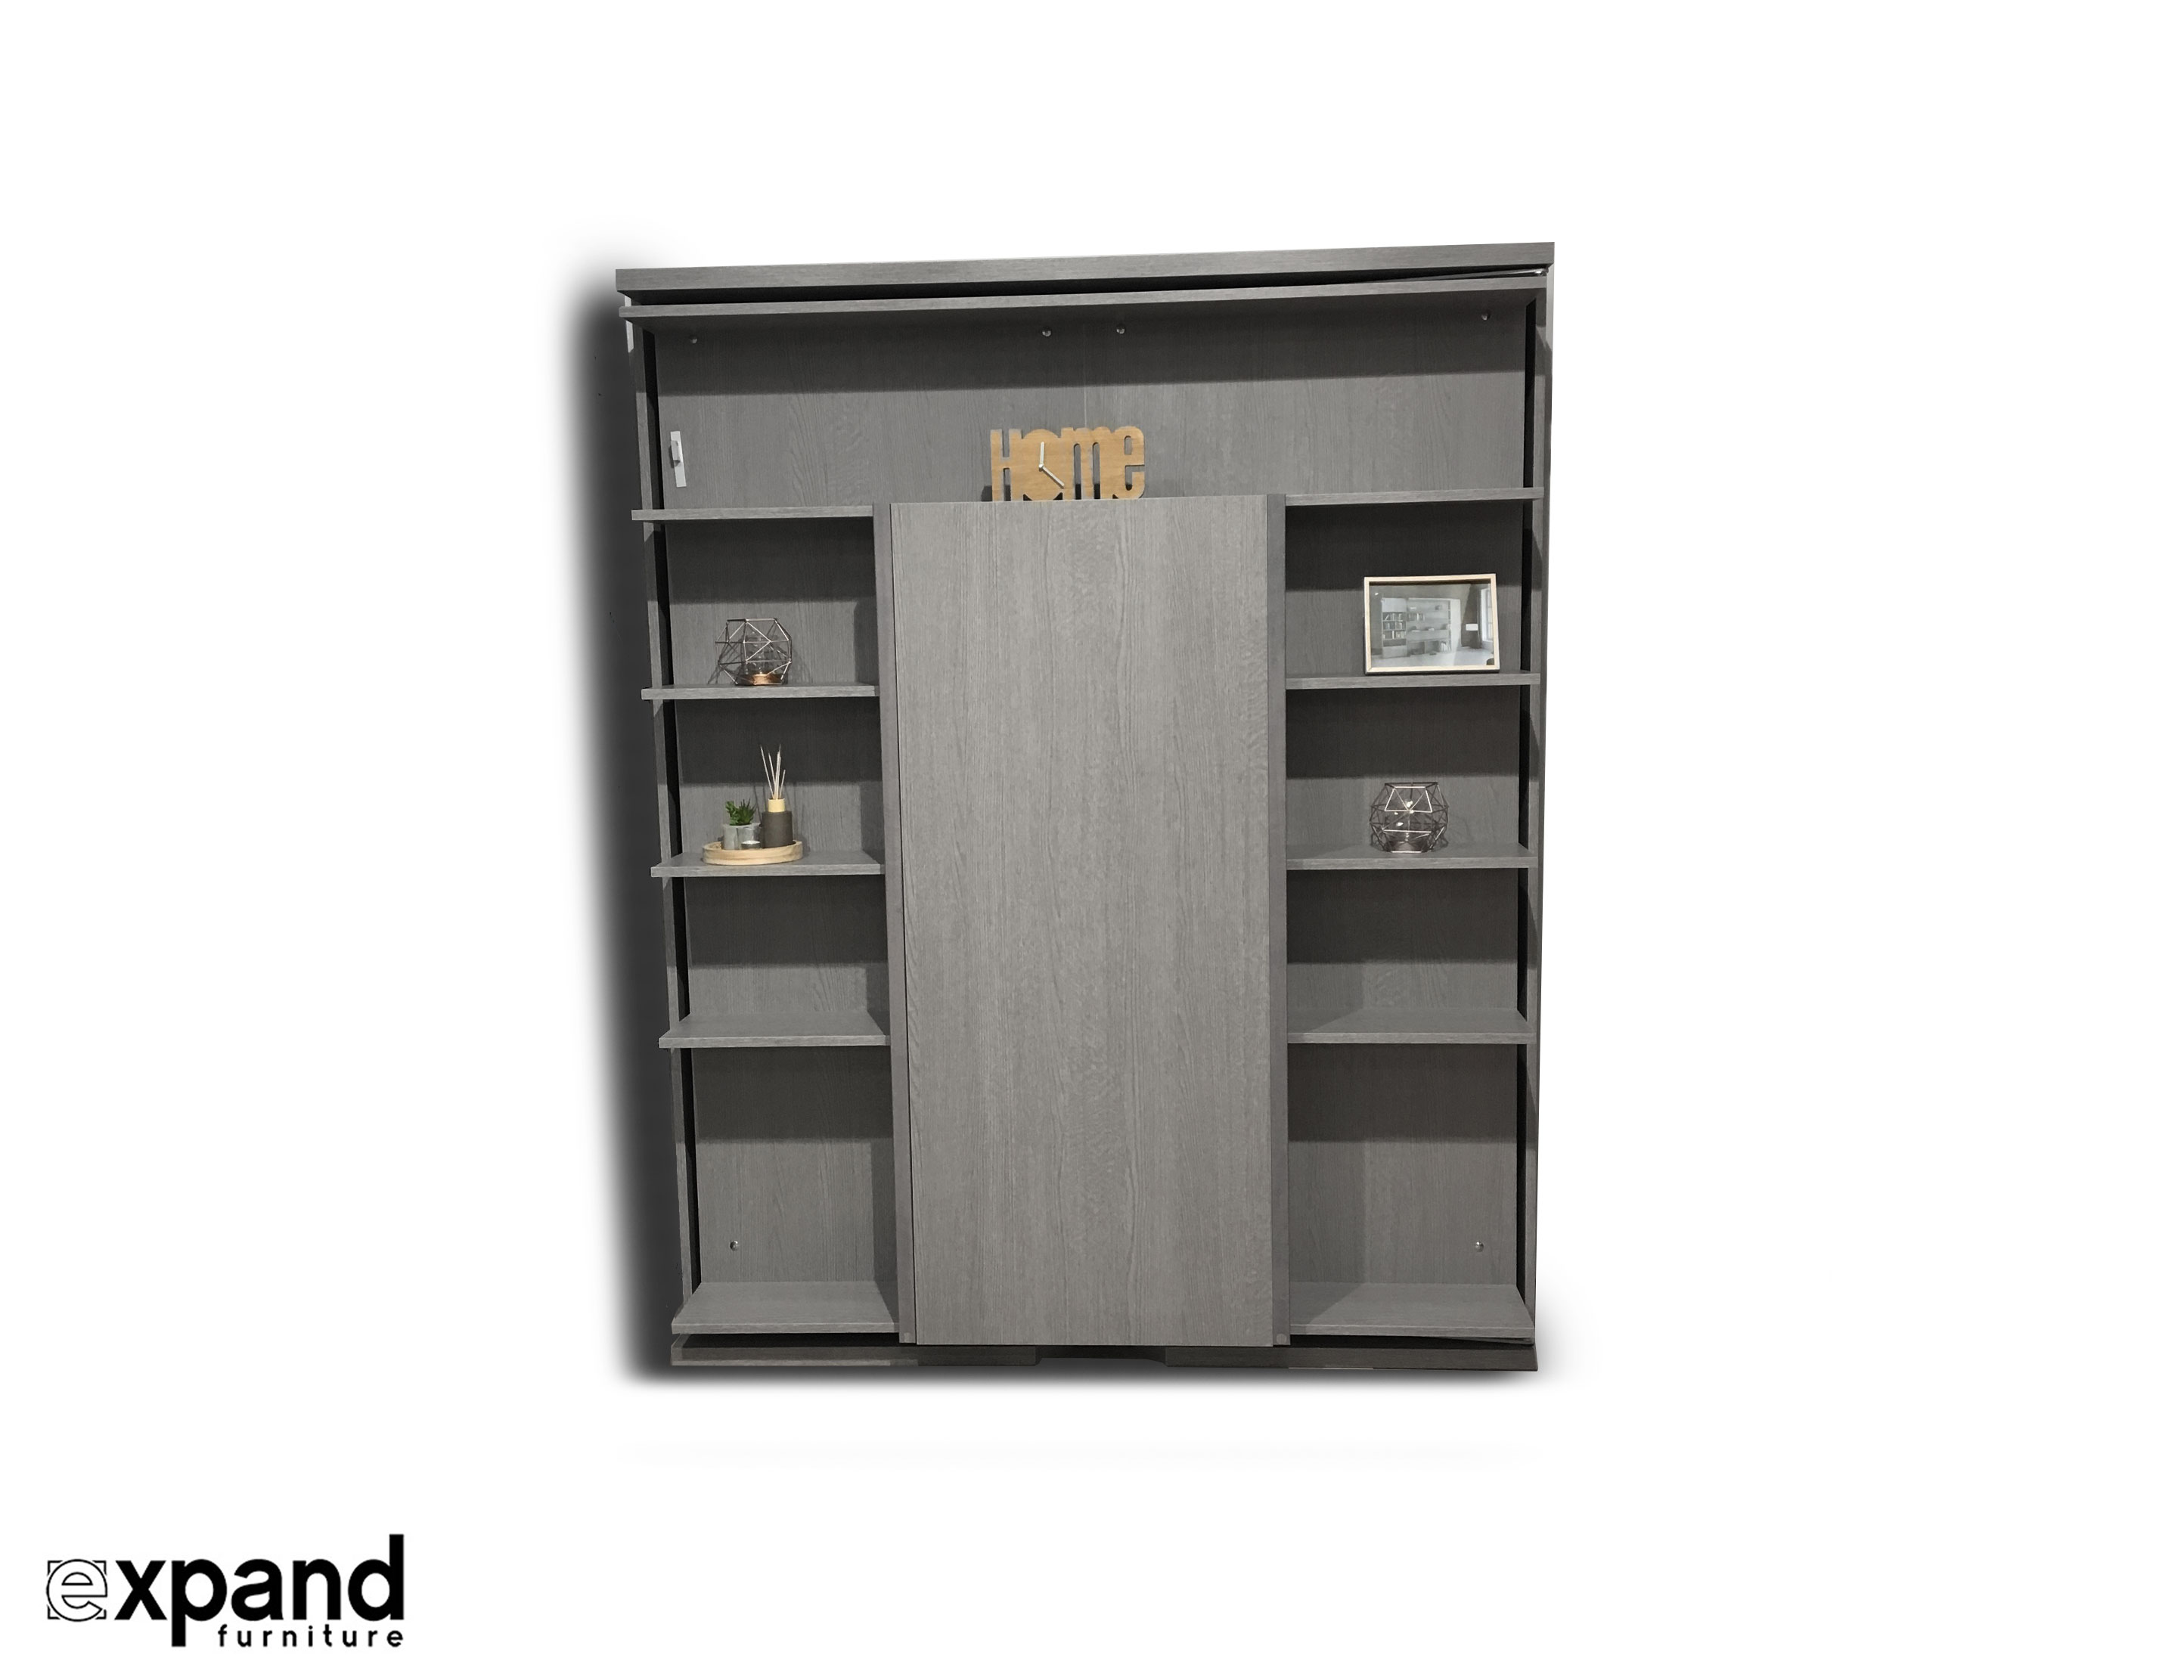 Compatto Wall Bed Revolving Bookcase With Table